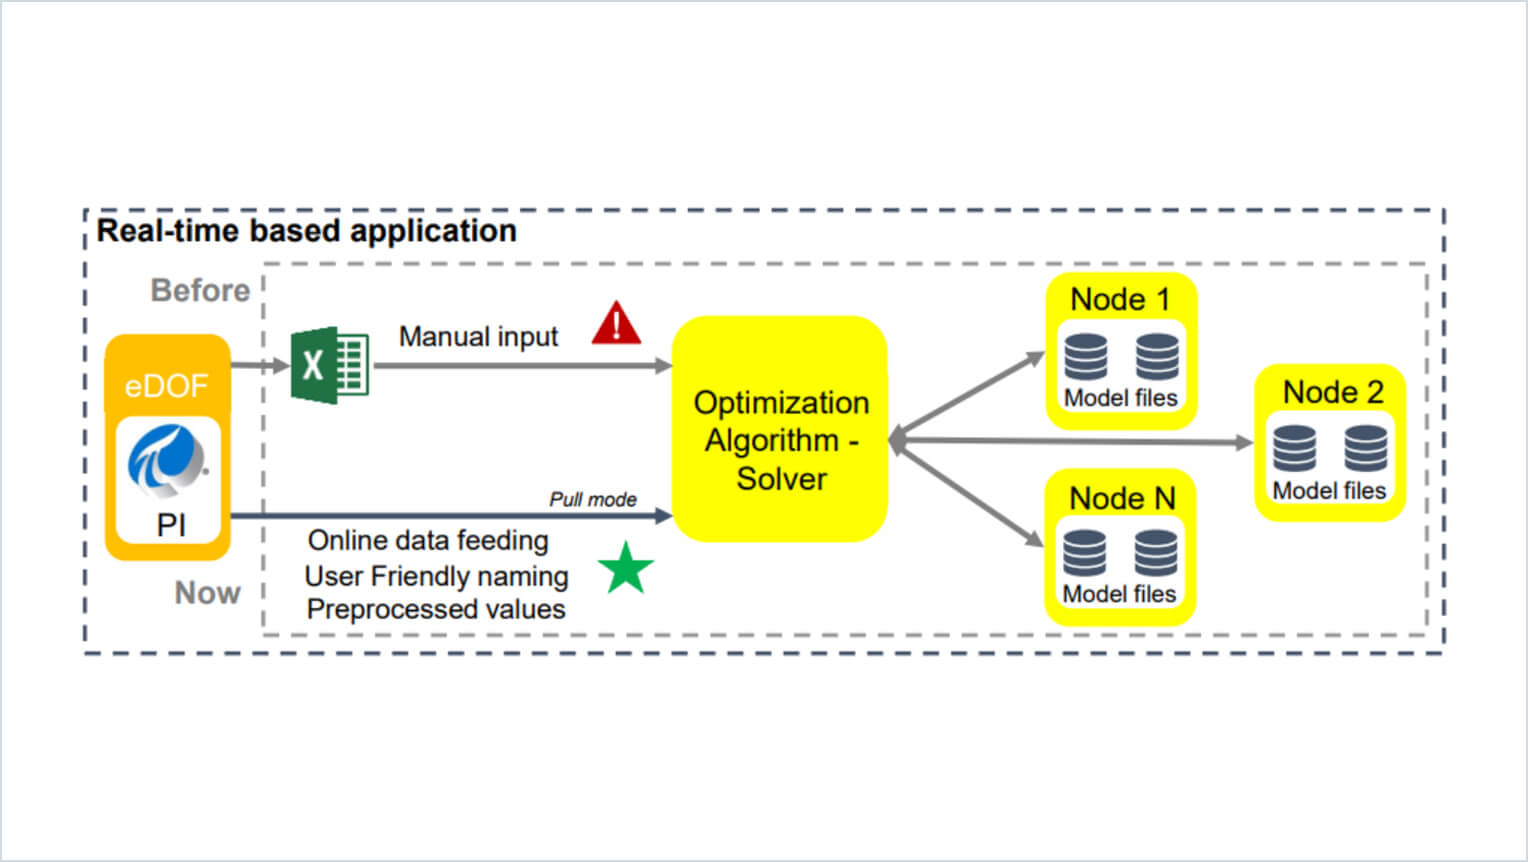 Eni real-time based application chart with PI System